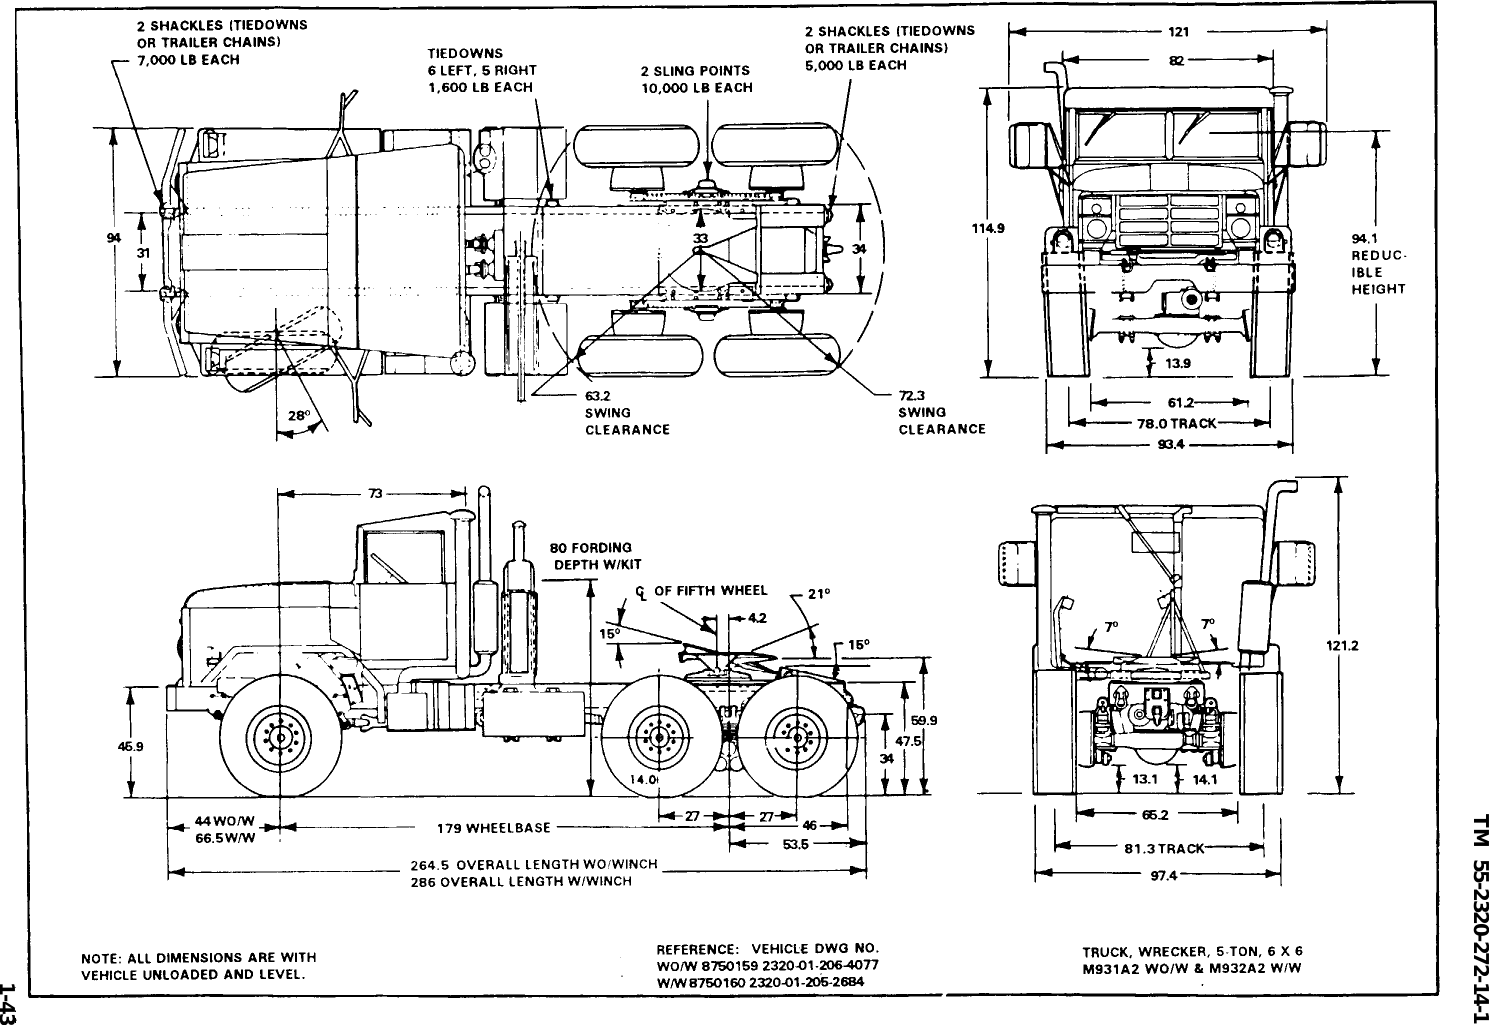 TM 55 2320 272 14 1 M923_Transport_Guide M923 Transport Guide M Military Trailer Wiring Diagram on